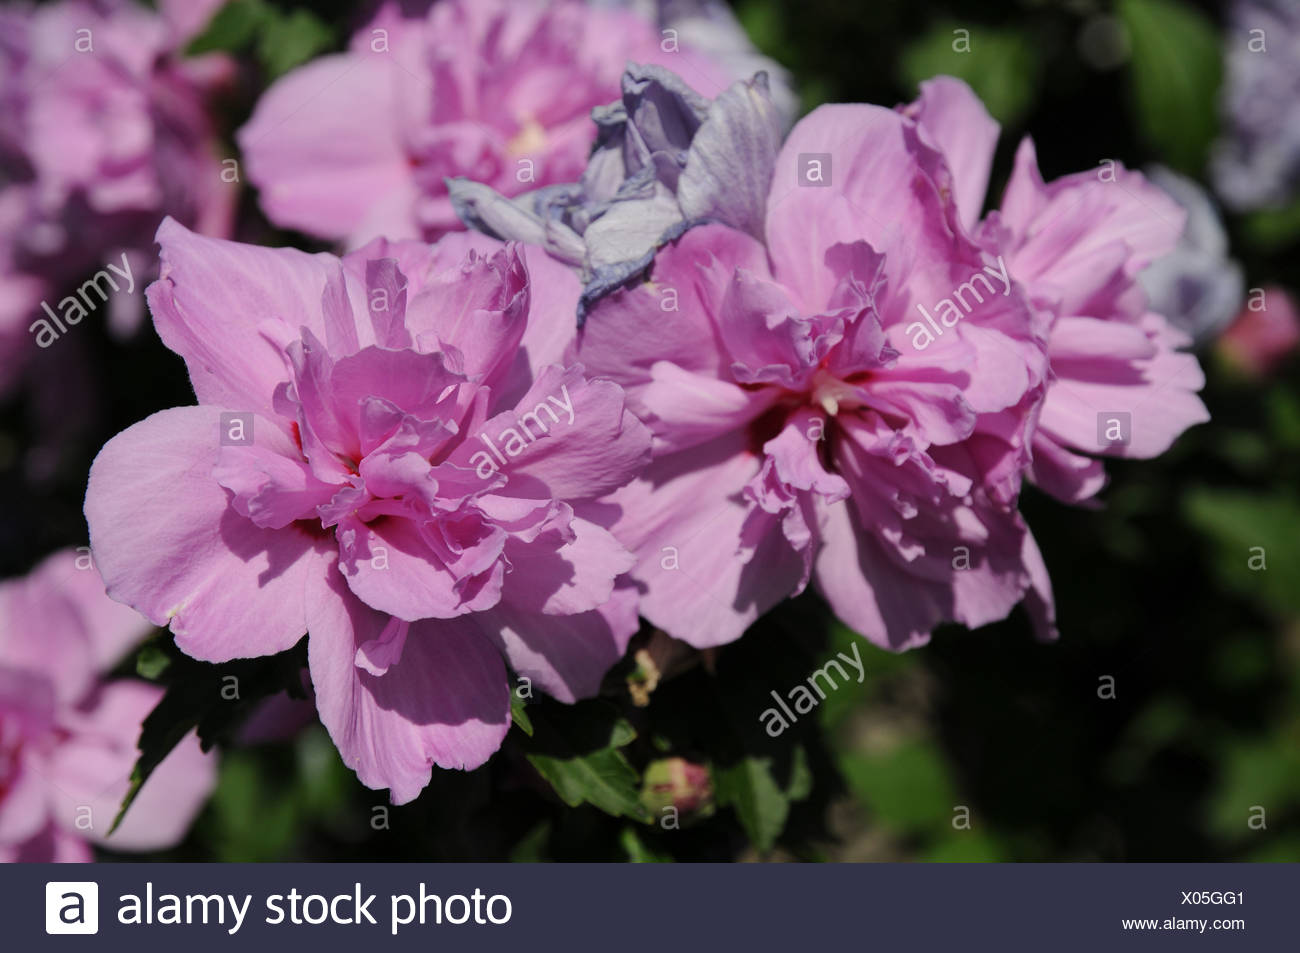 Strauch Sommerblüher Shrub Mallow Stock Photo 275488641 Alamy